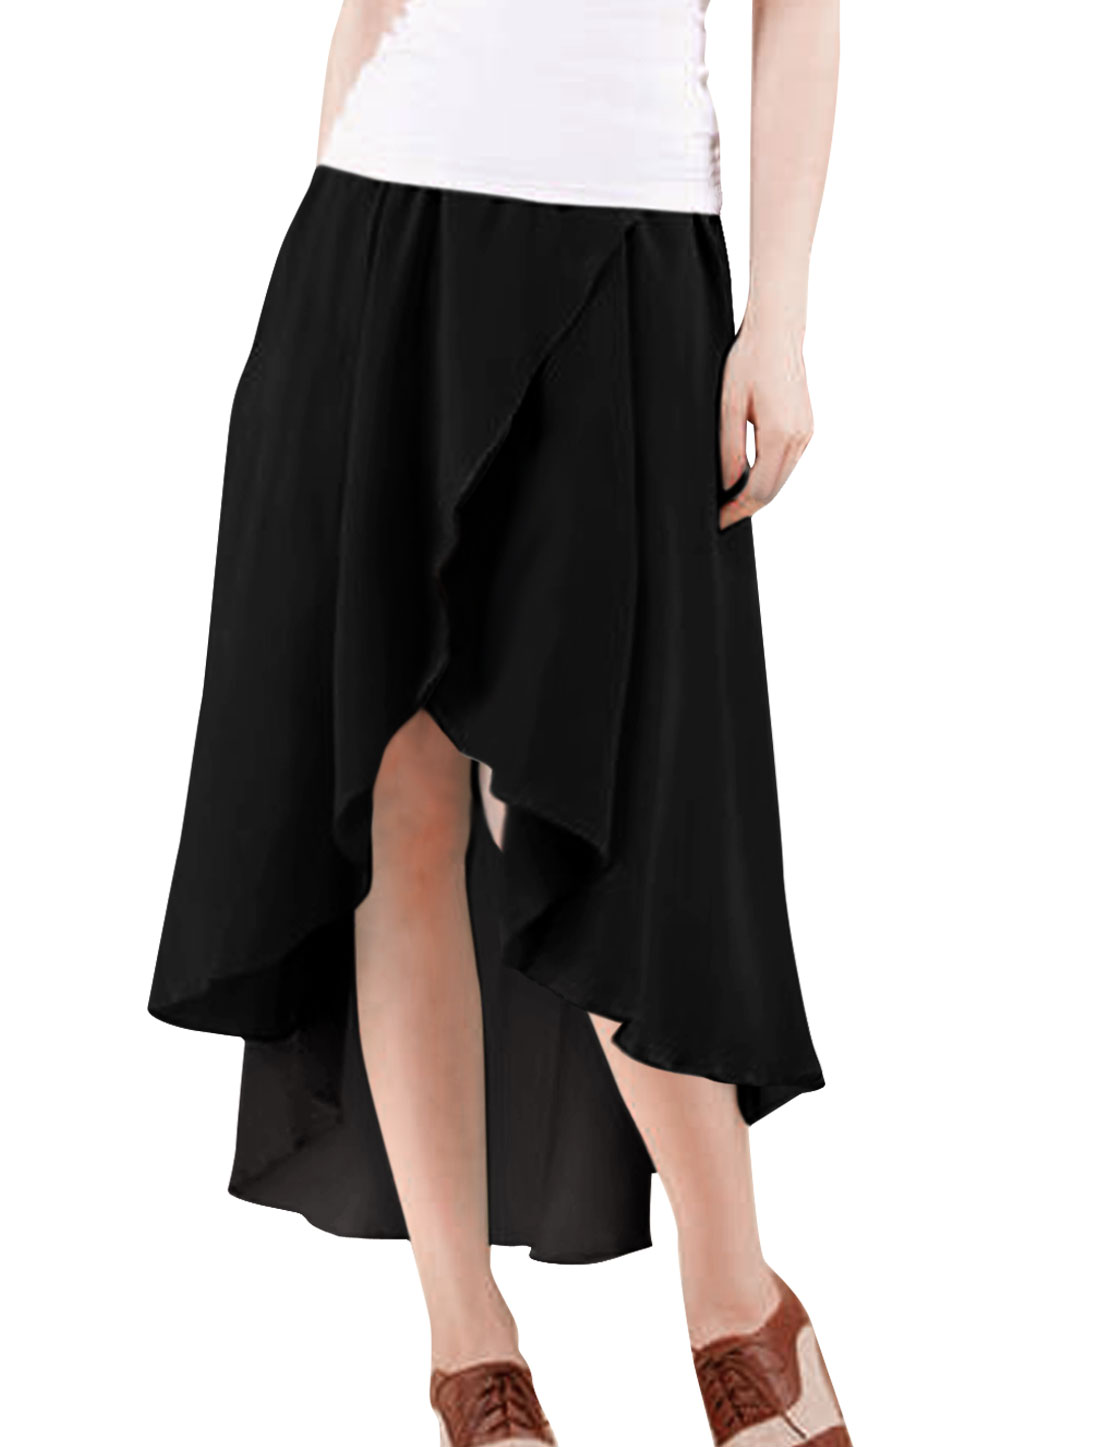 Pure Black Color Asymmetric Low-High Hem Knee-Length Skirt L for Lady